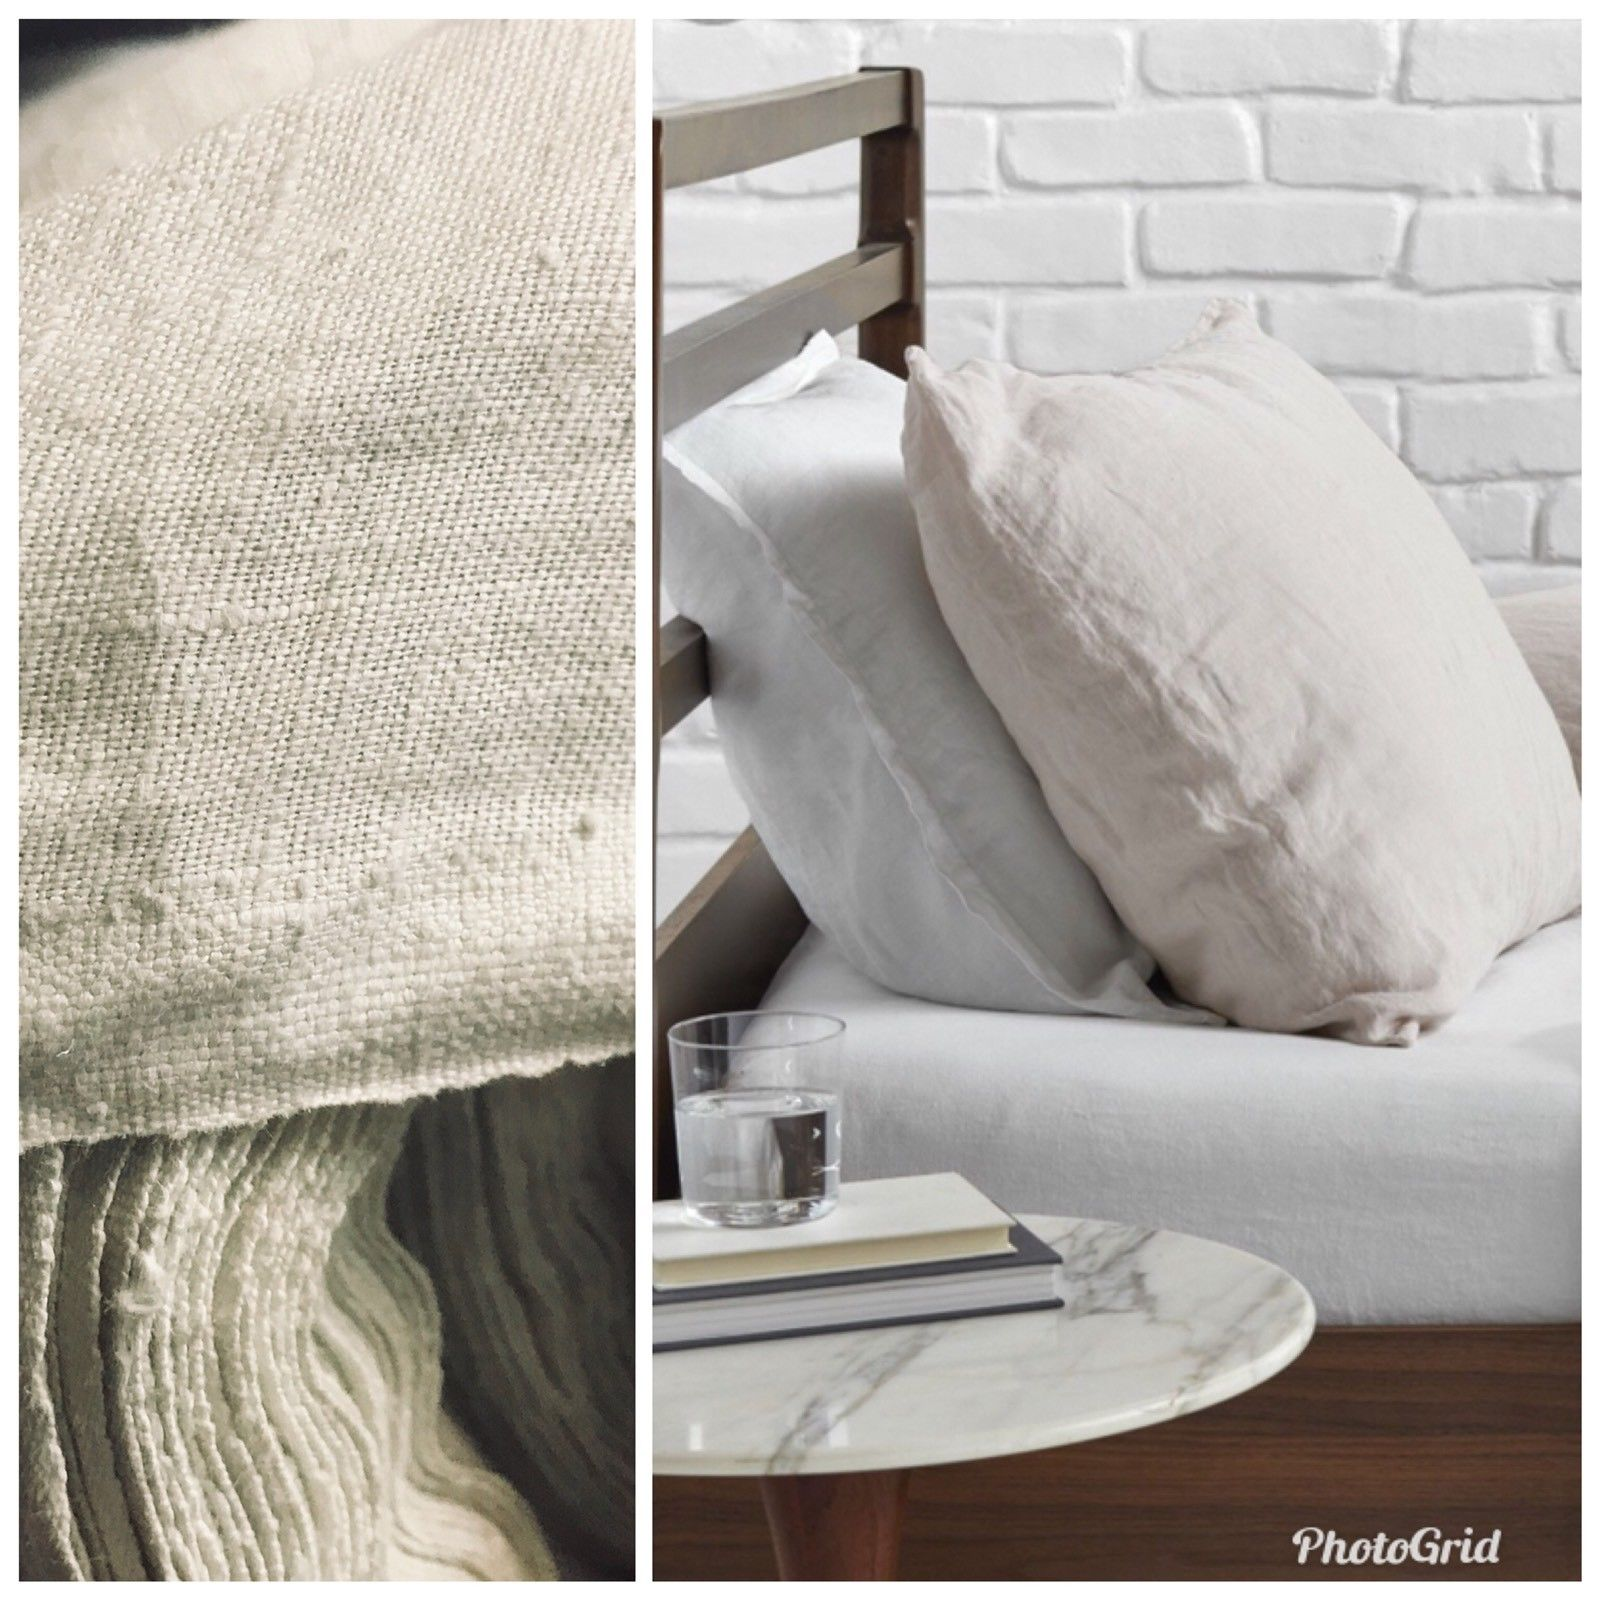 Fine Soft Linen Cotton Blend Woven Fabric By the yard- Color: Flax Natural